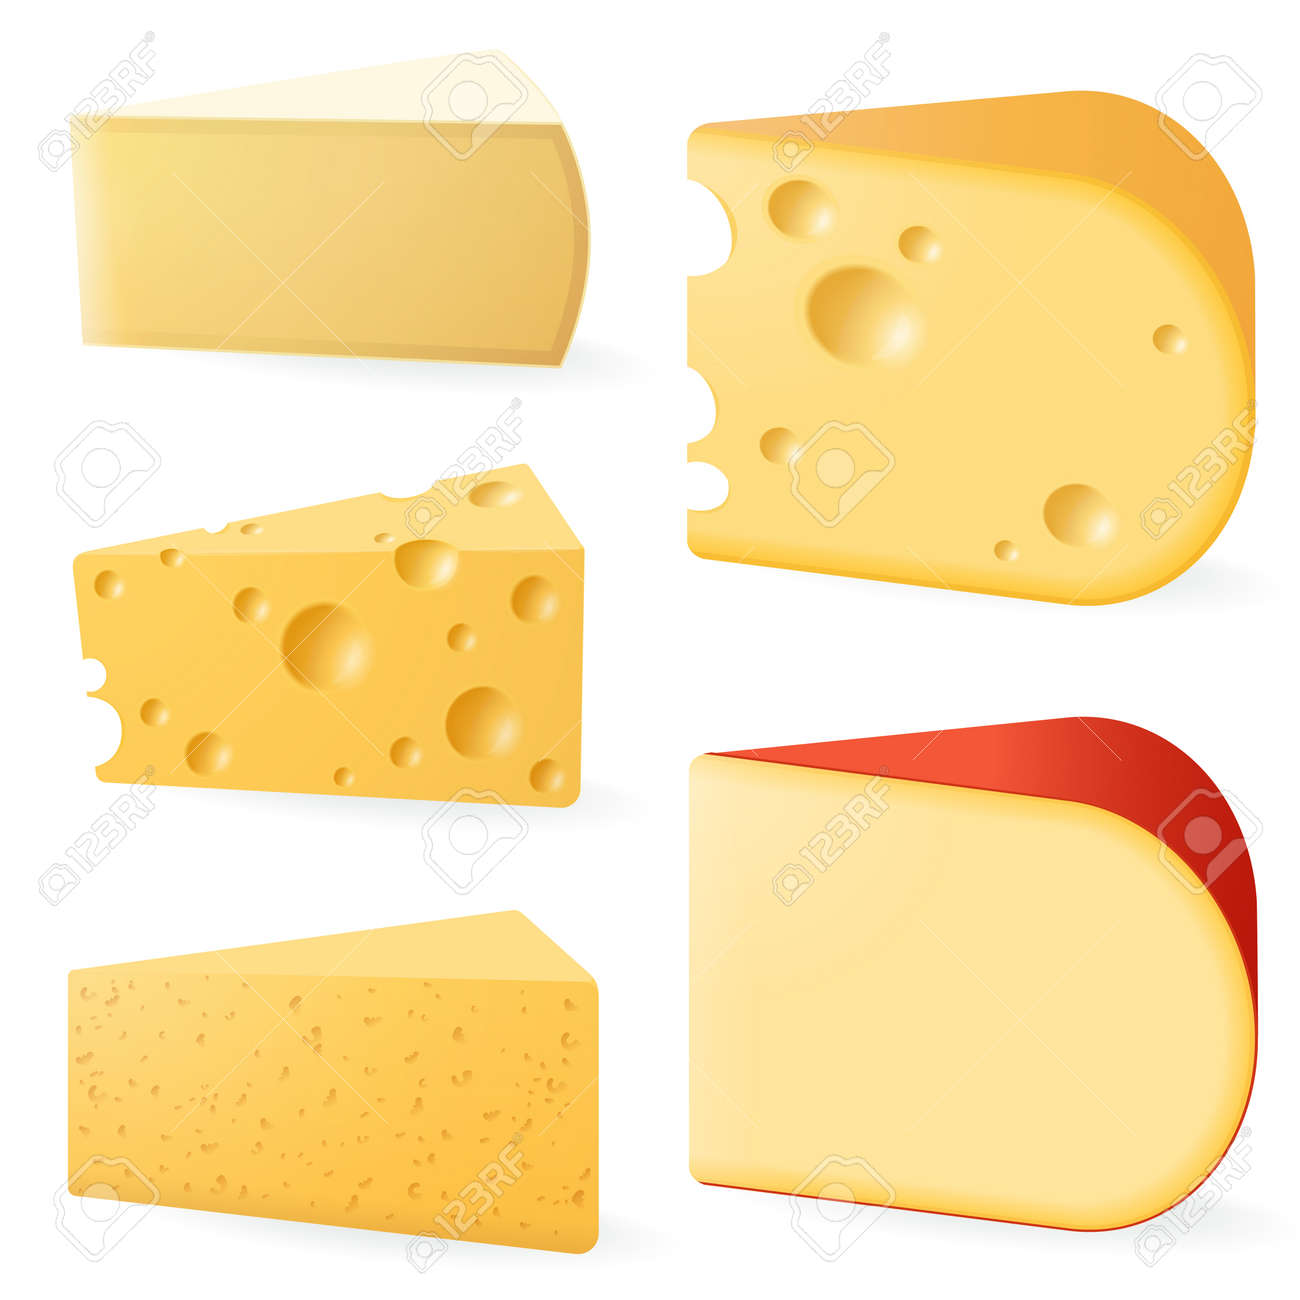 Various types of cheese. - 169068129